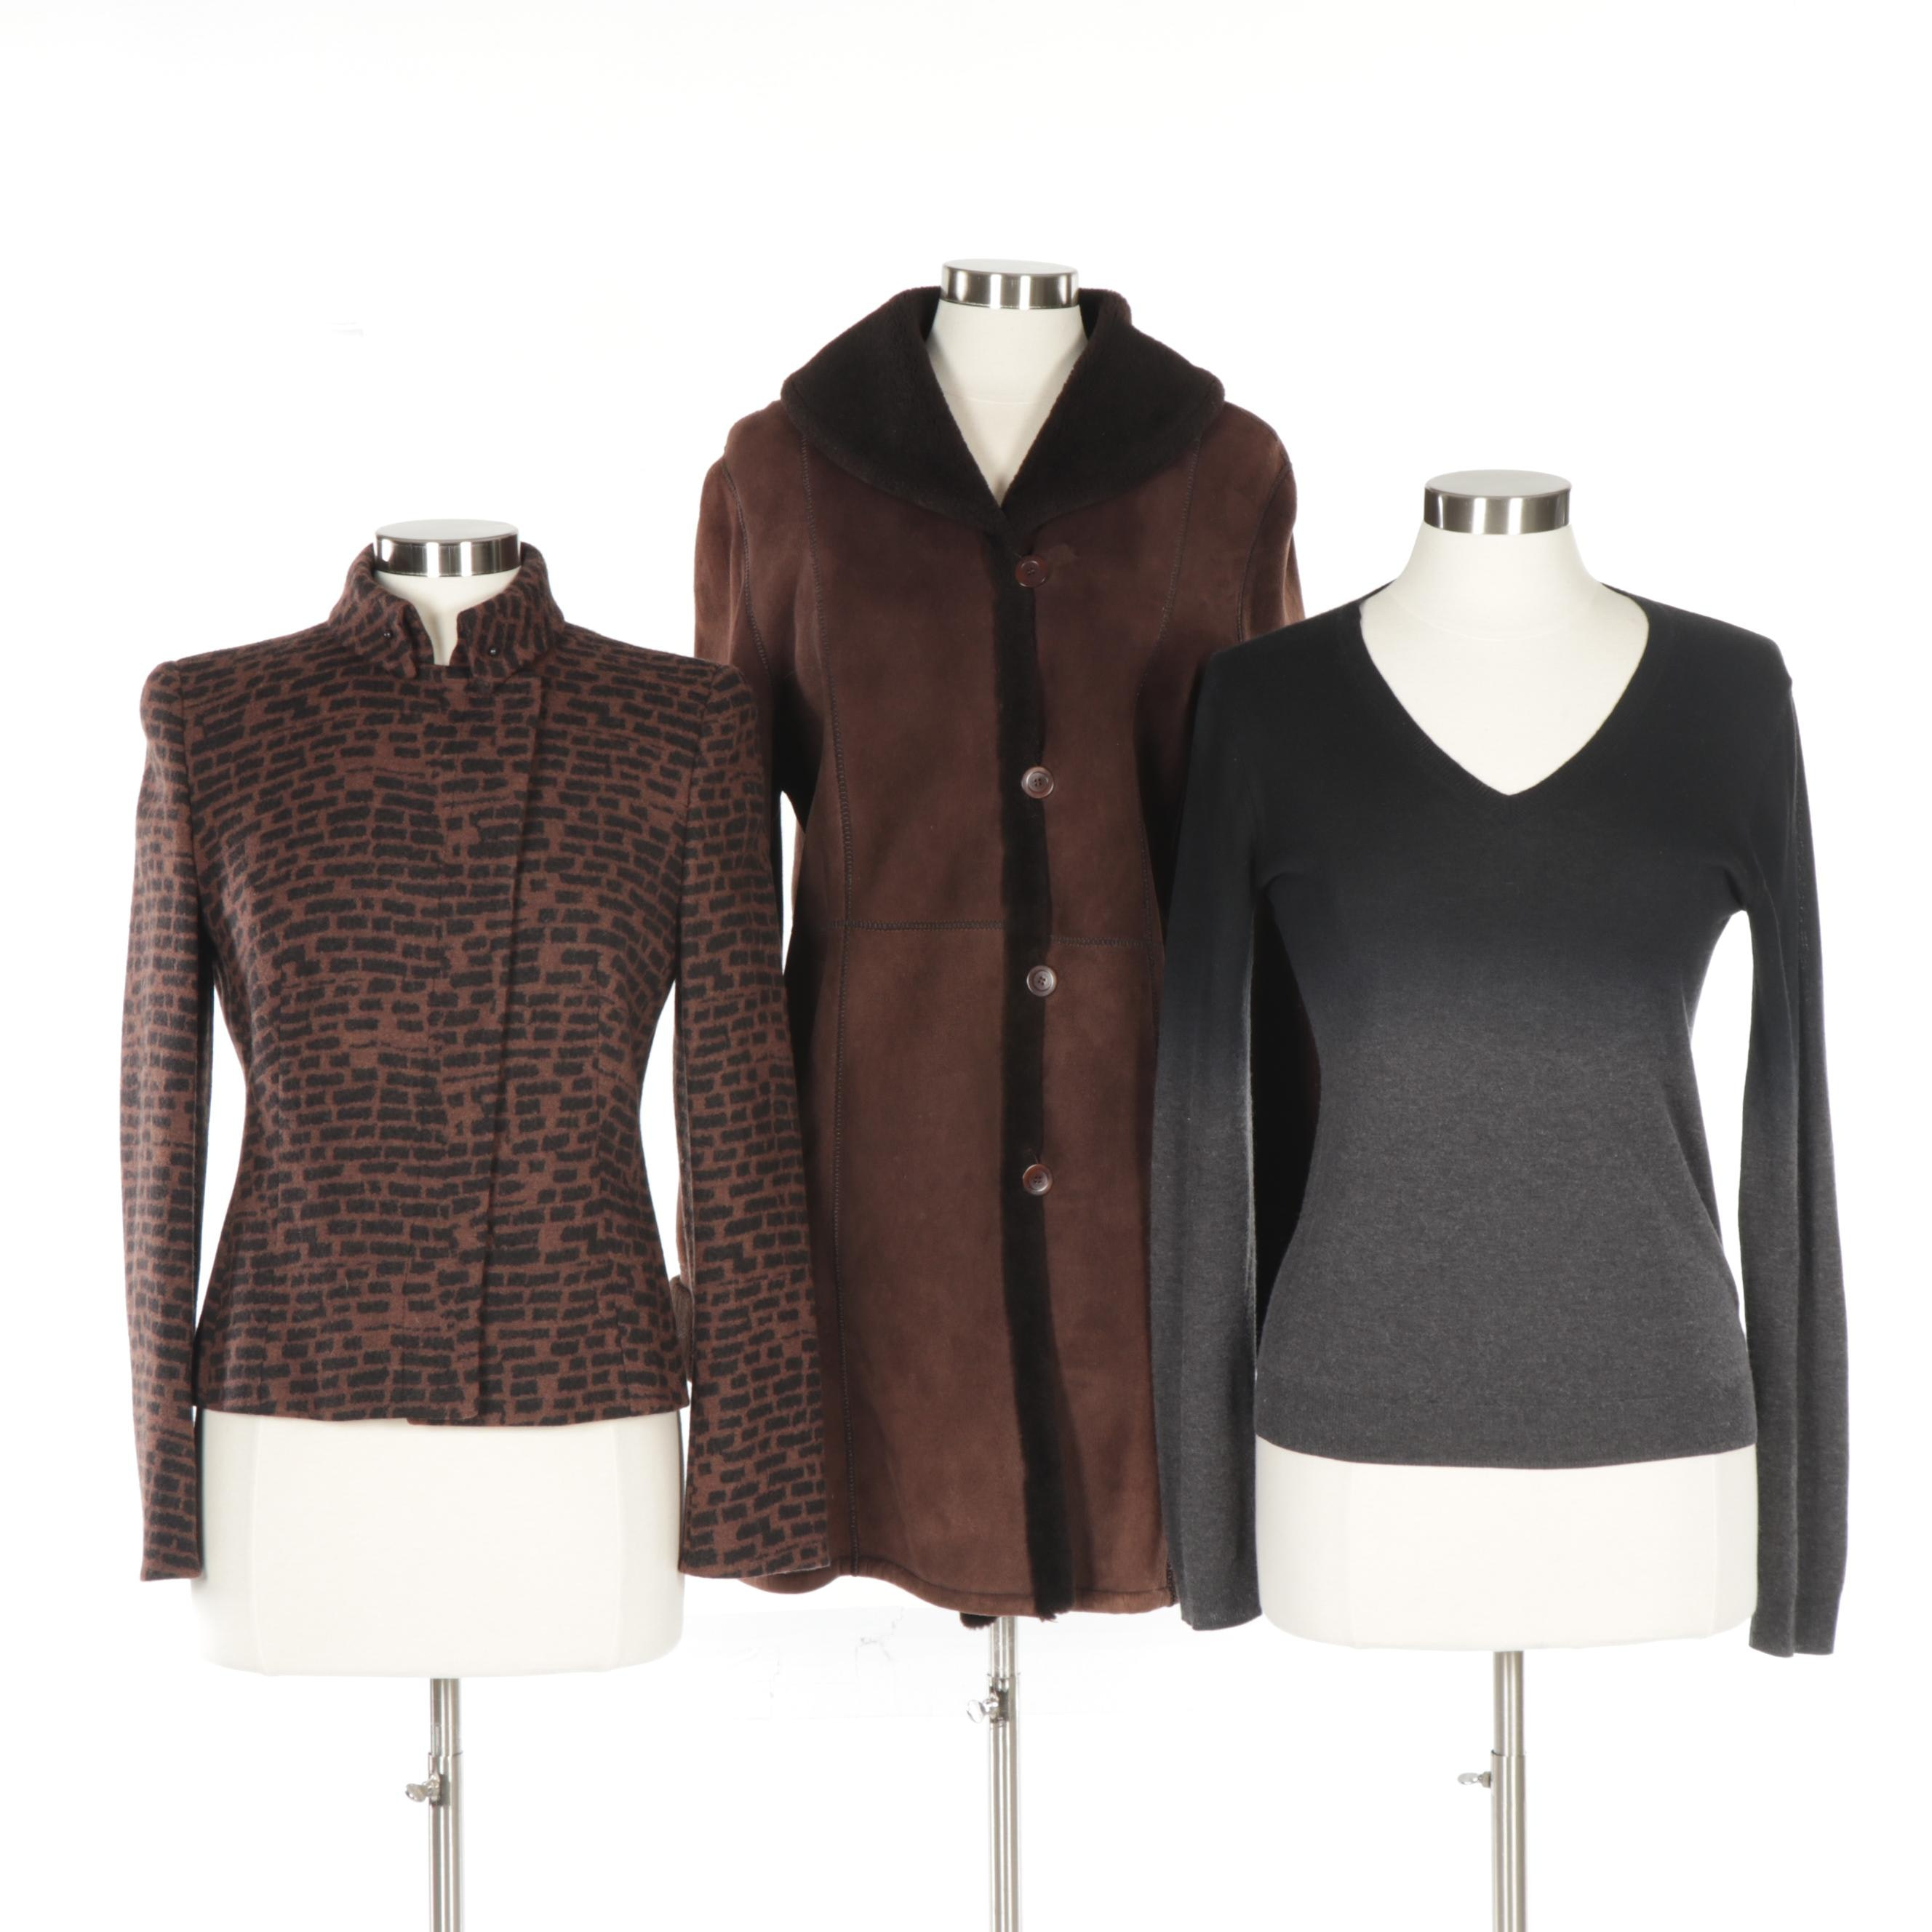 Women's Shearling, Wool and Cashmere Outerwear and Sweater Including Akris